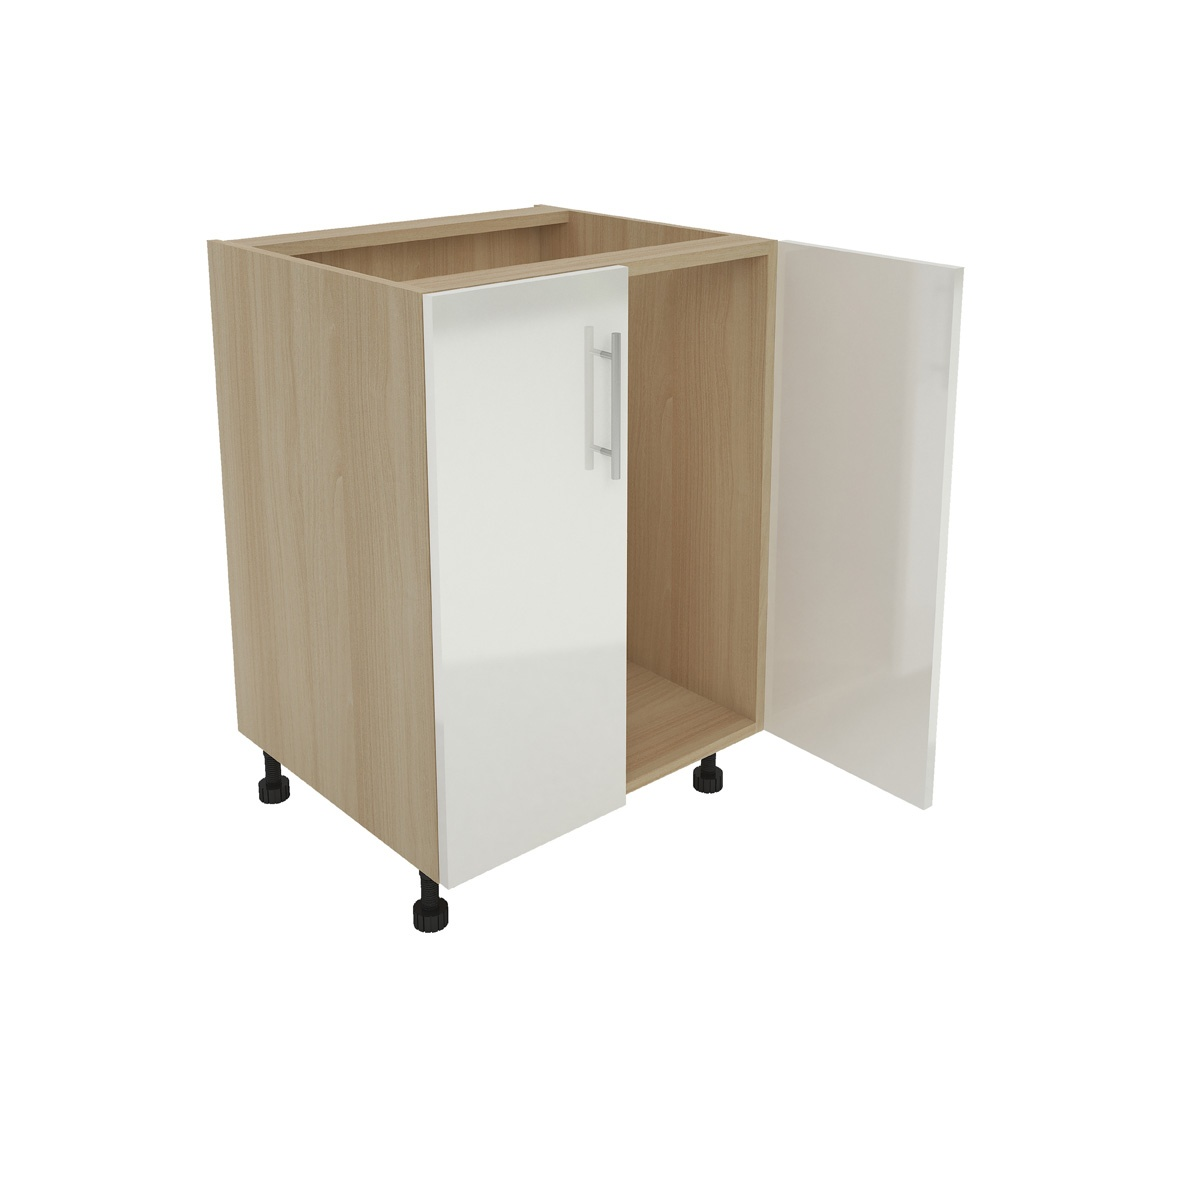 Base Sink Full Height Cabinet